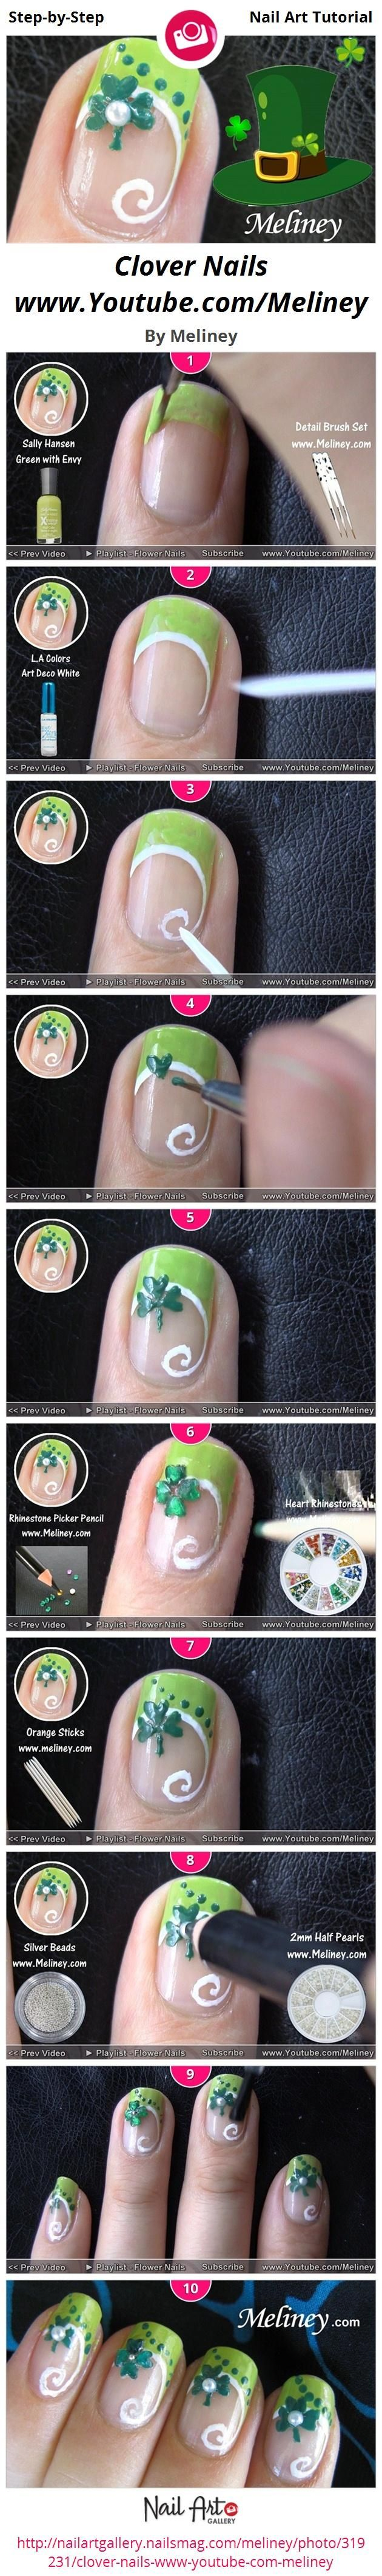 Nail Art / Nail Art Gallery Step-by-Step Tutorial - Fereckels